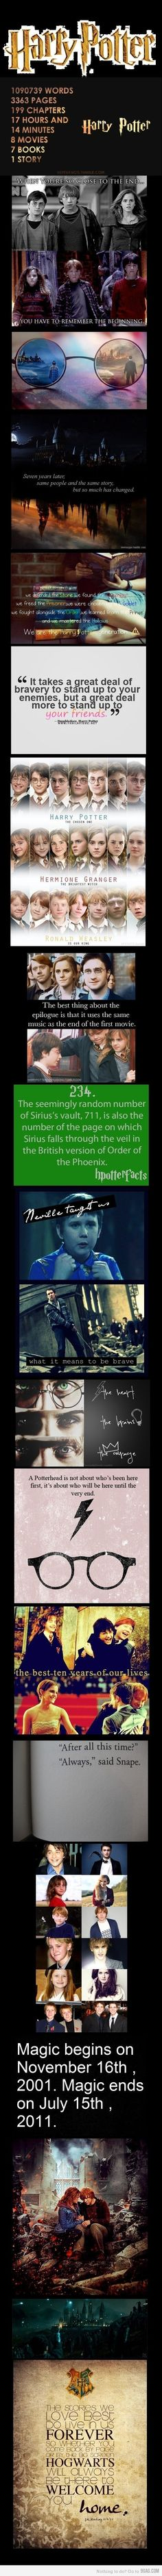 You know youre a Potterhead when you cry reading this... :')